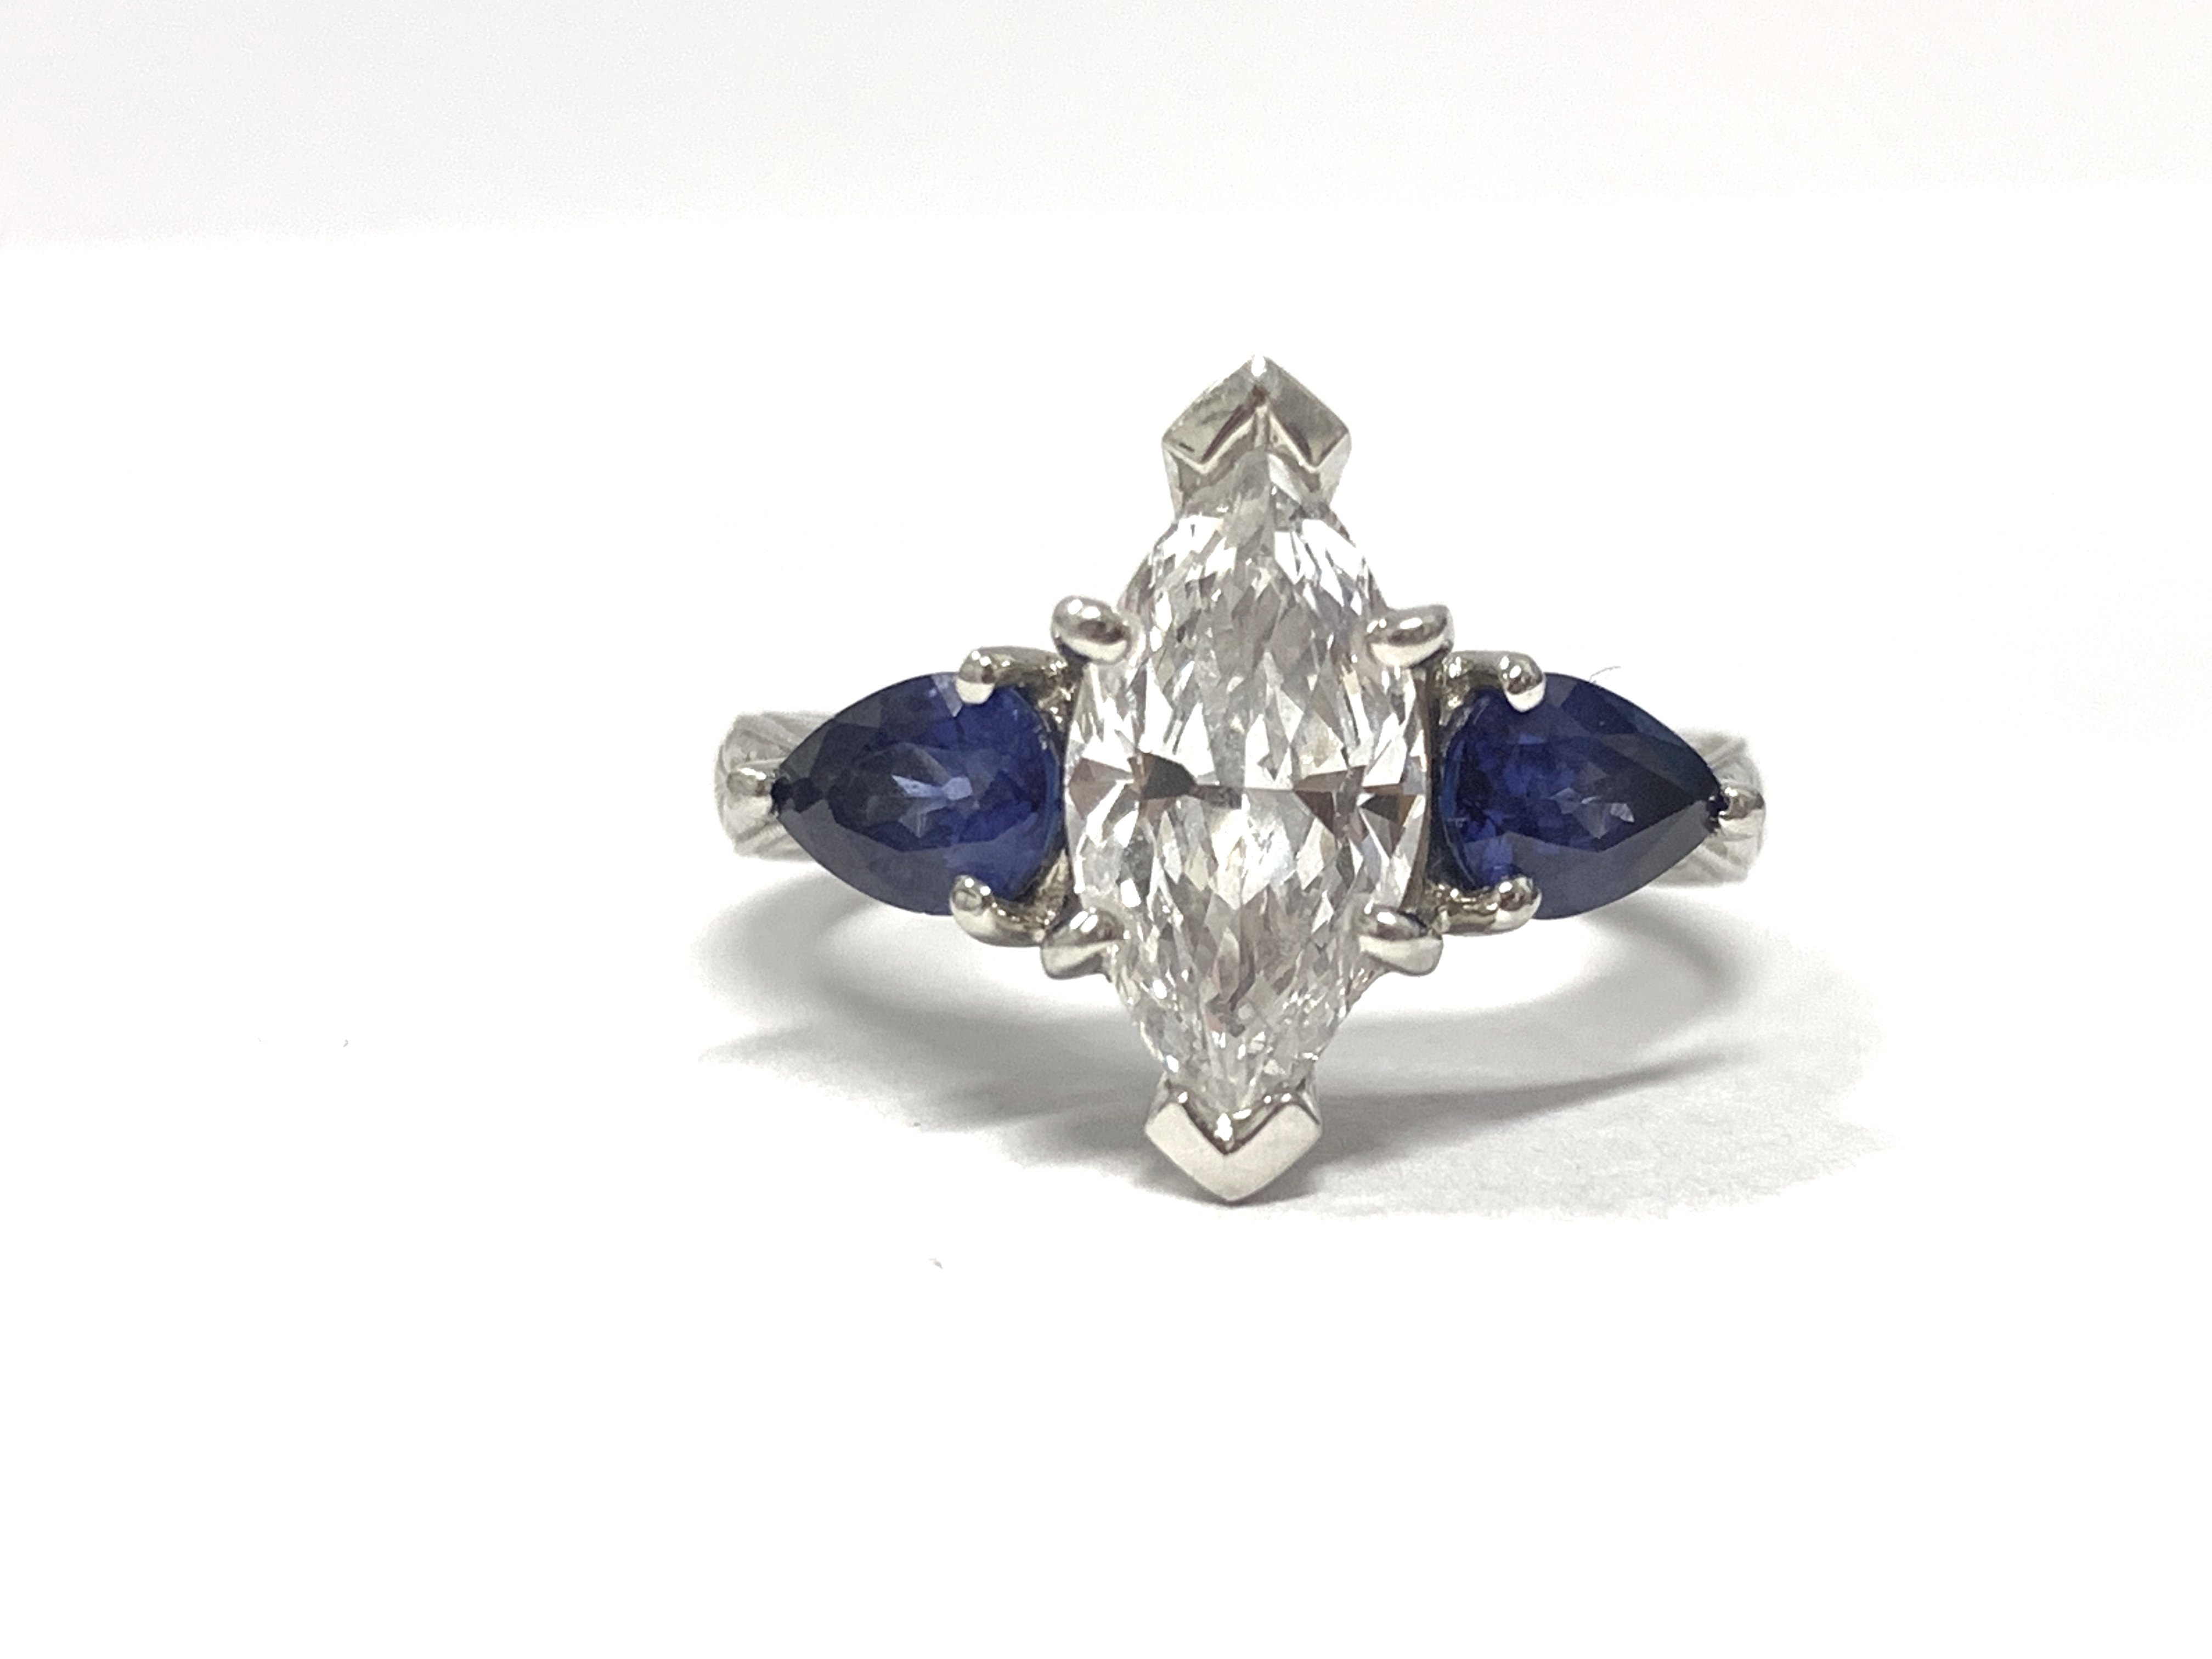 1 25 Ct Marquise Diamond Ring With Sapphire Accents I Do Now I Don T